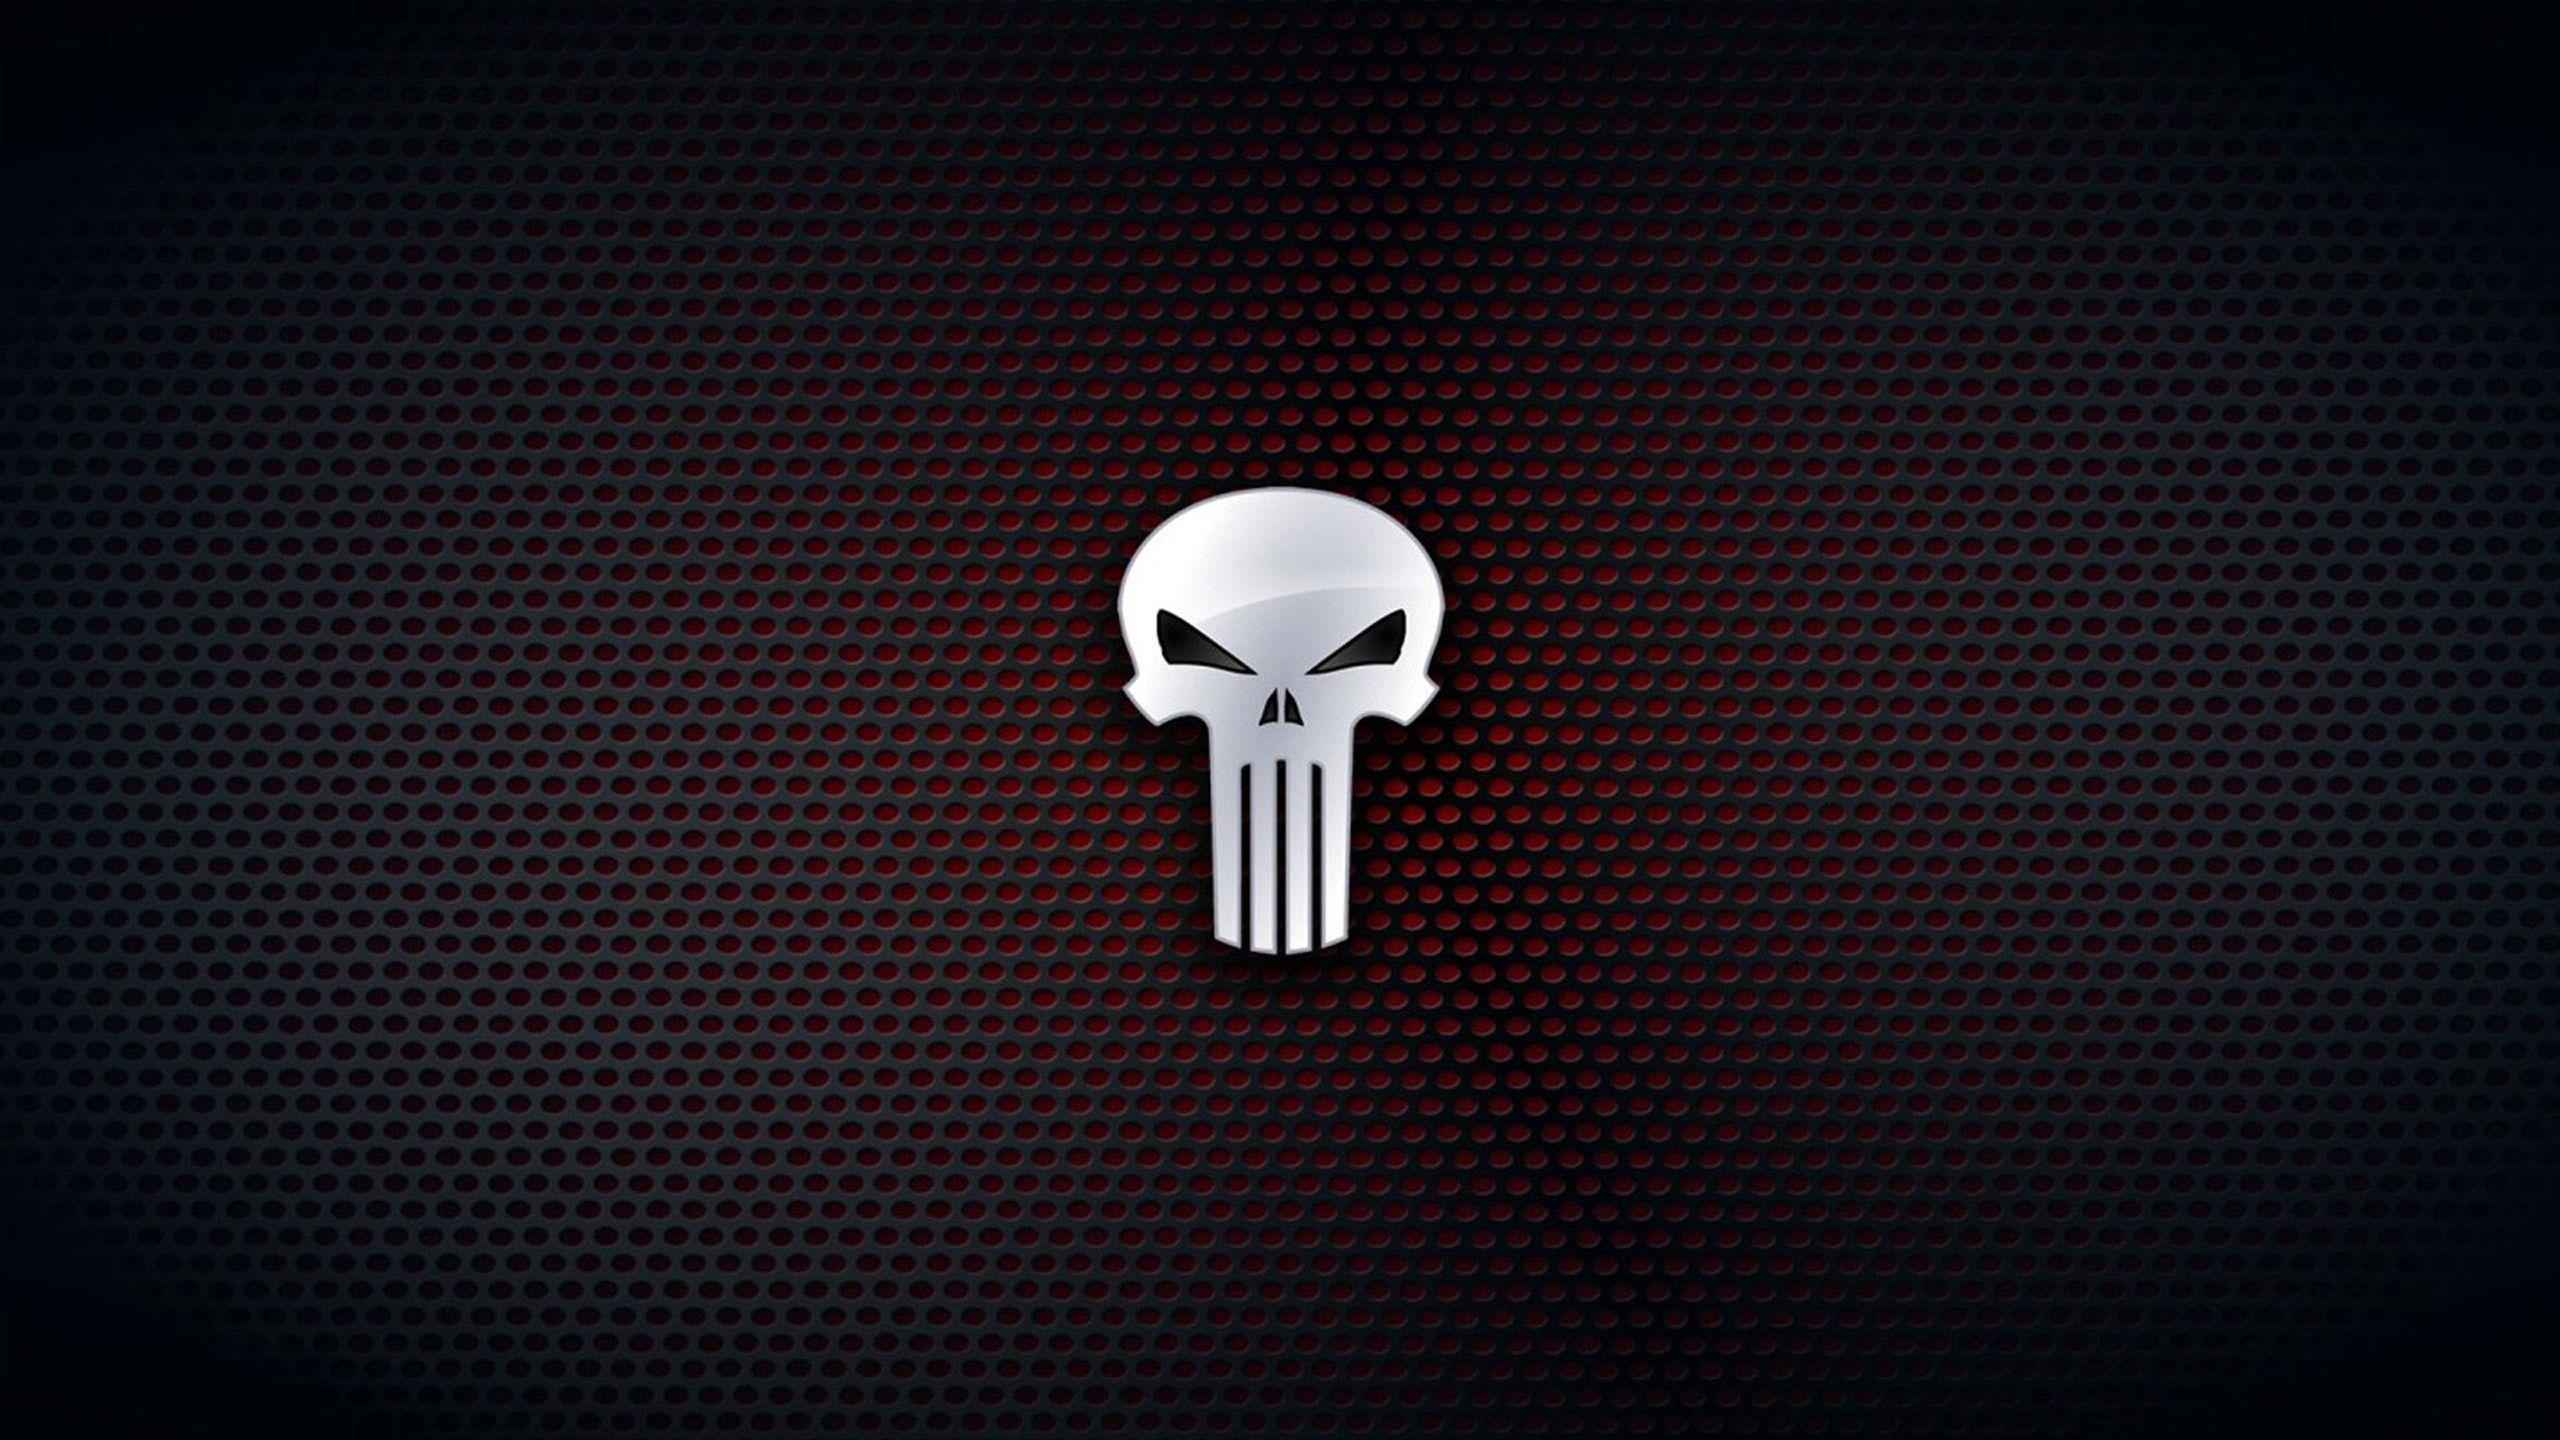 2560x1440 25 best ideas about Punisher on Pinterest The